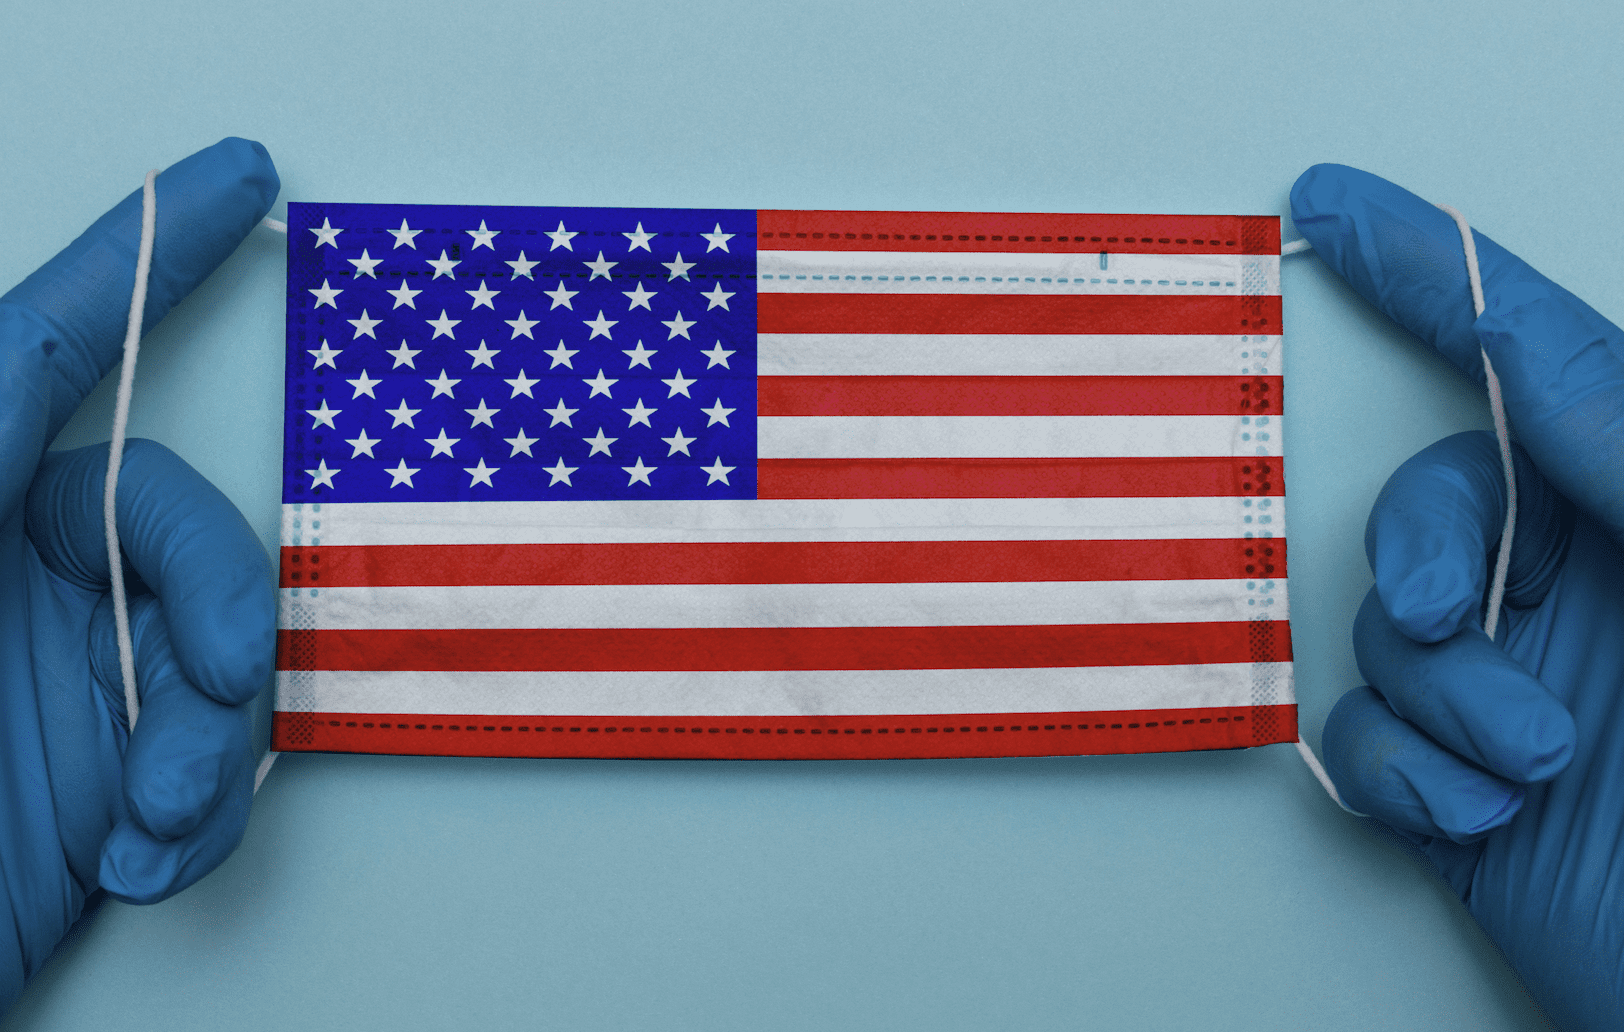 AlertTrace: Digital Contact Tracing Made in America